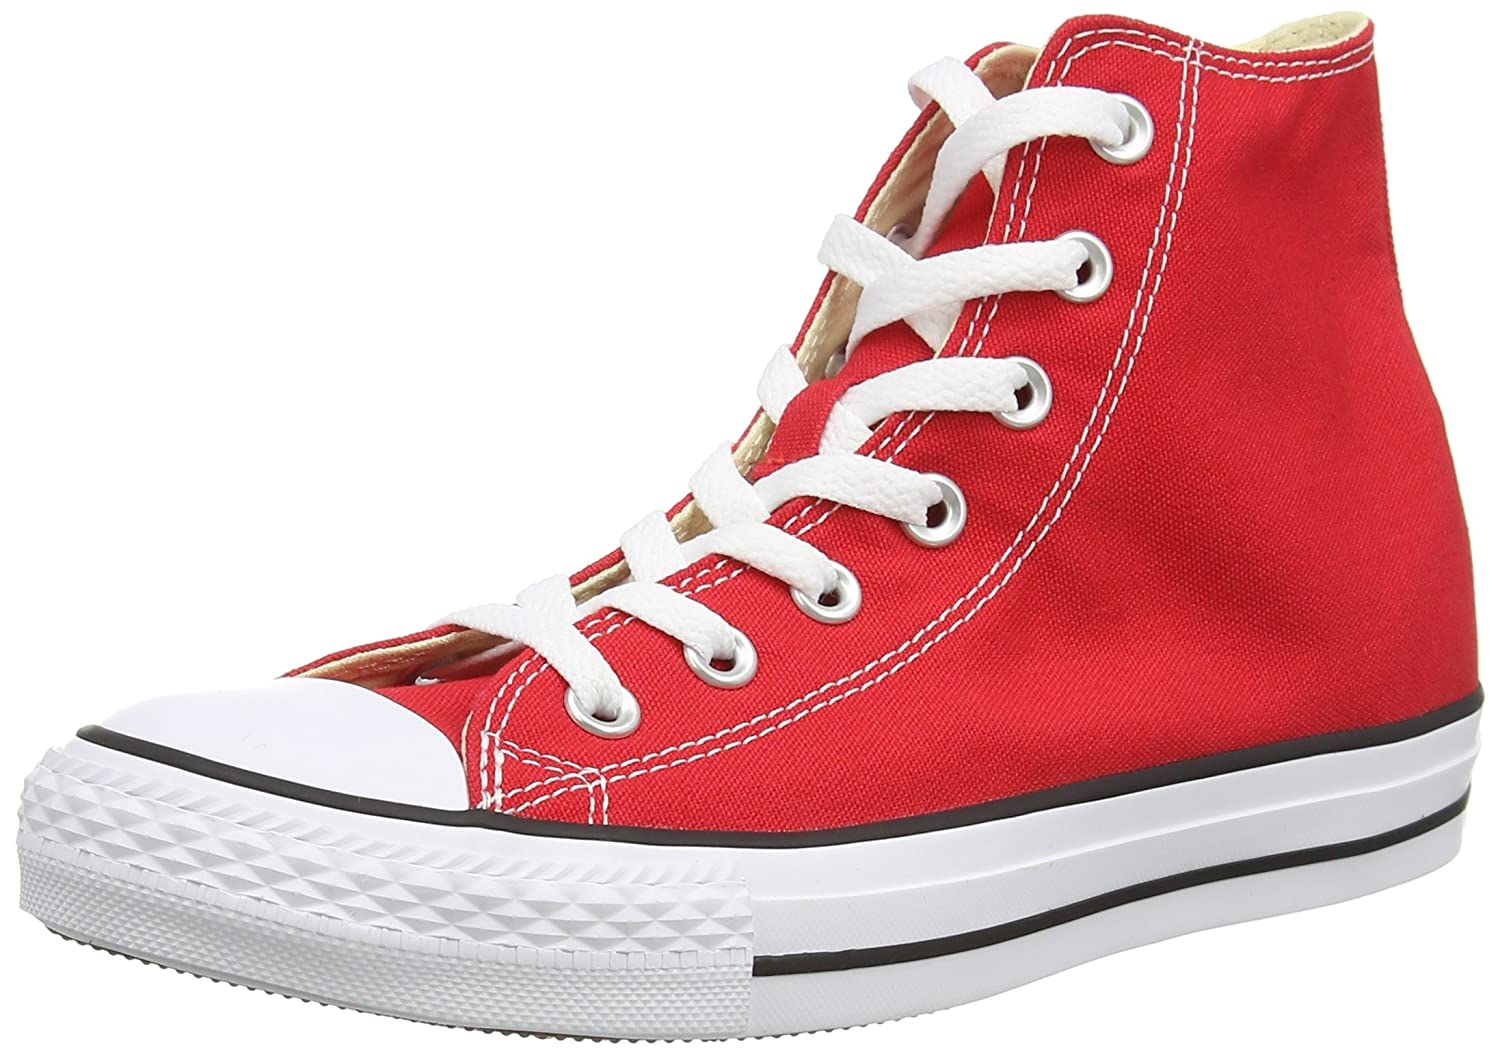 Converse AS Hi Can charcoal 1J793 Unisex-Erwachsene Sneaker  8.5 D(M) US|Red